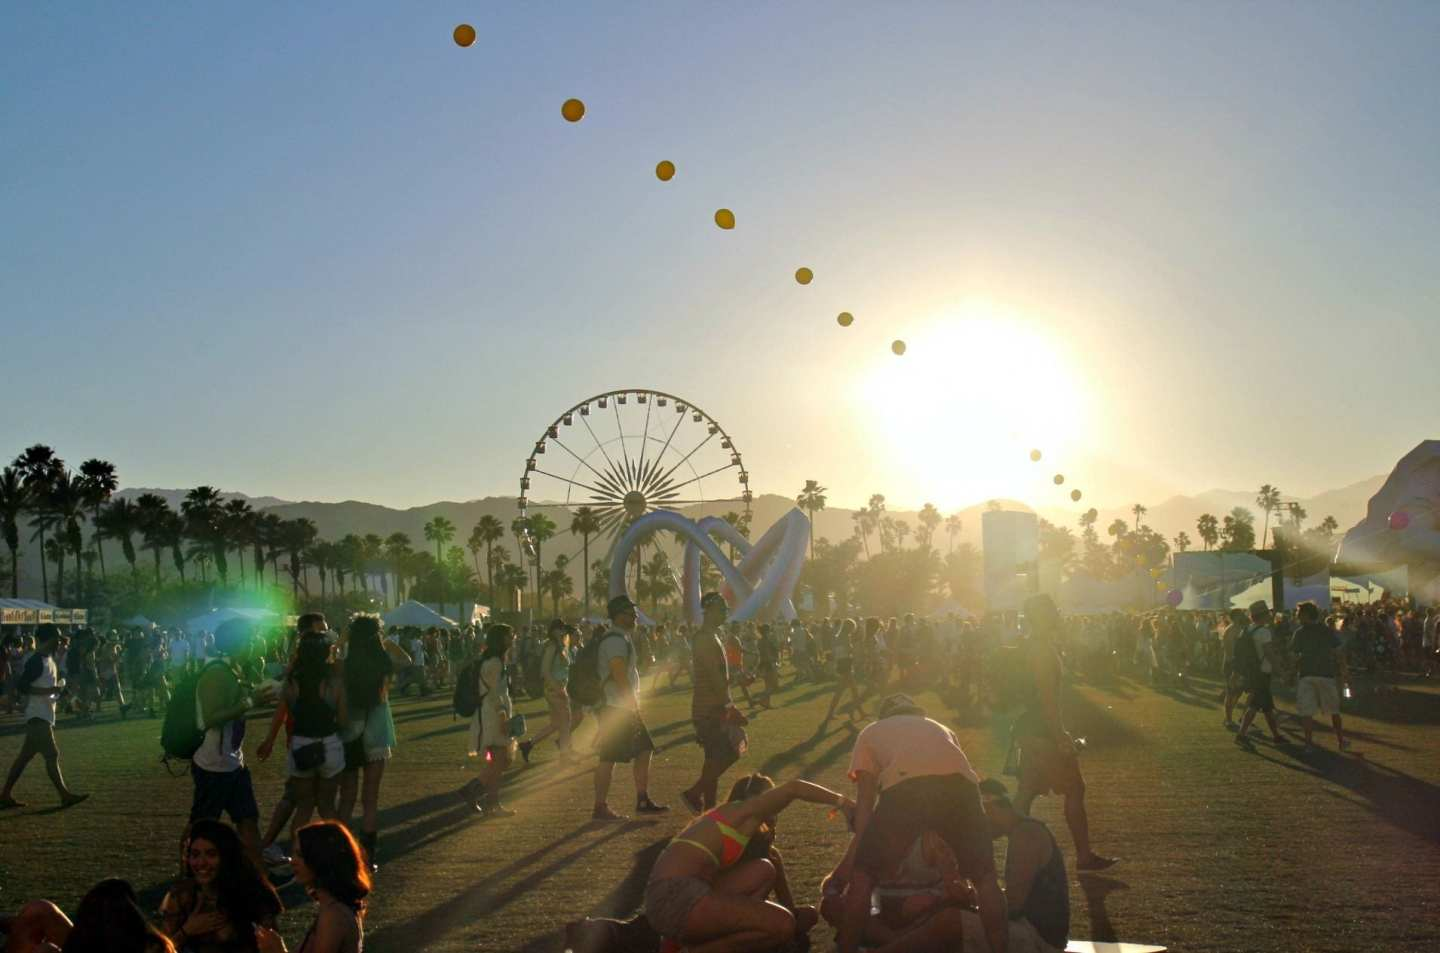 Top Tips For Going To Coachella From The UK